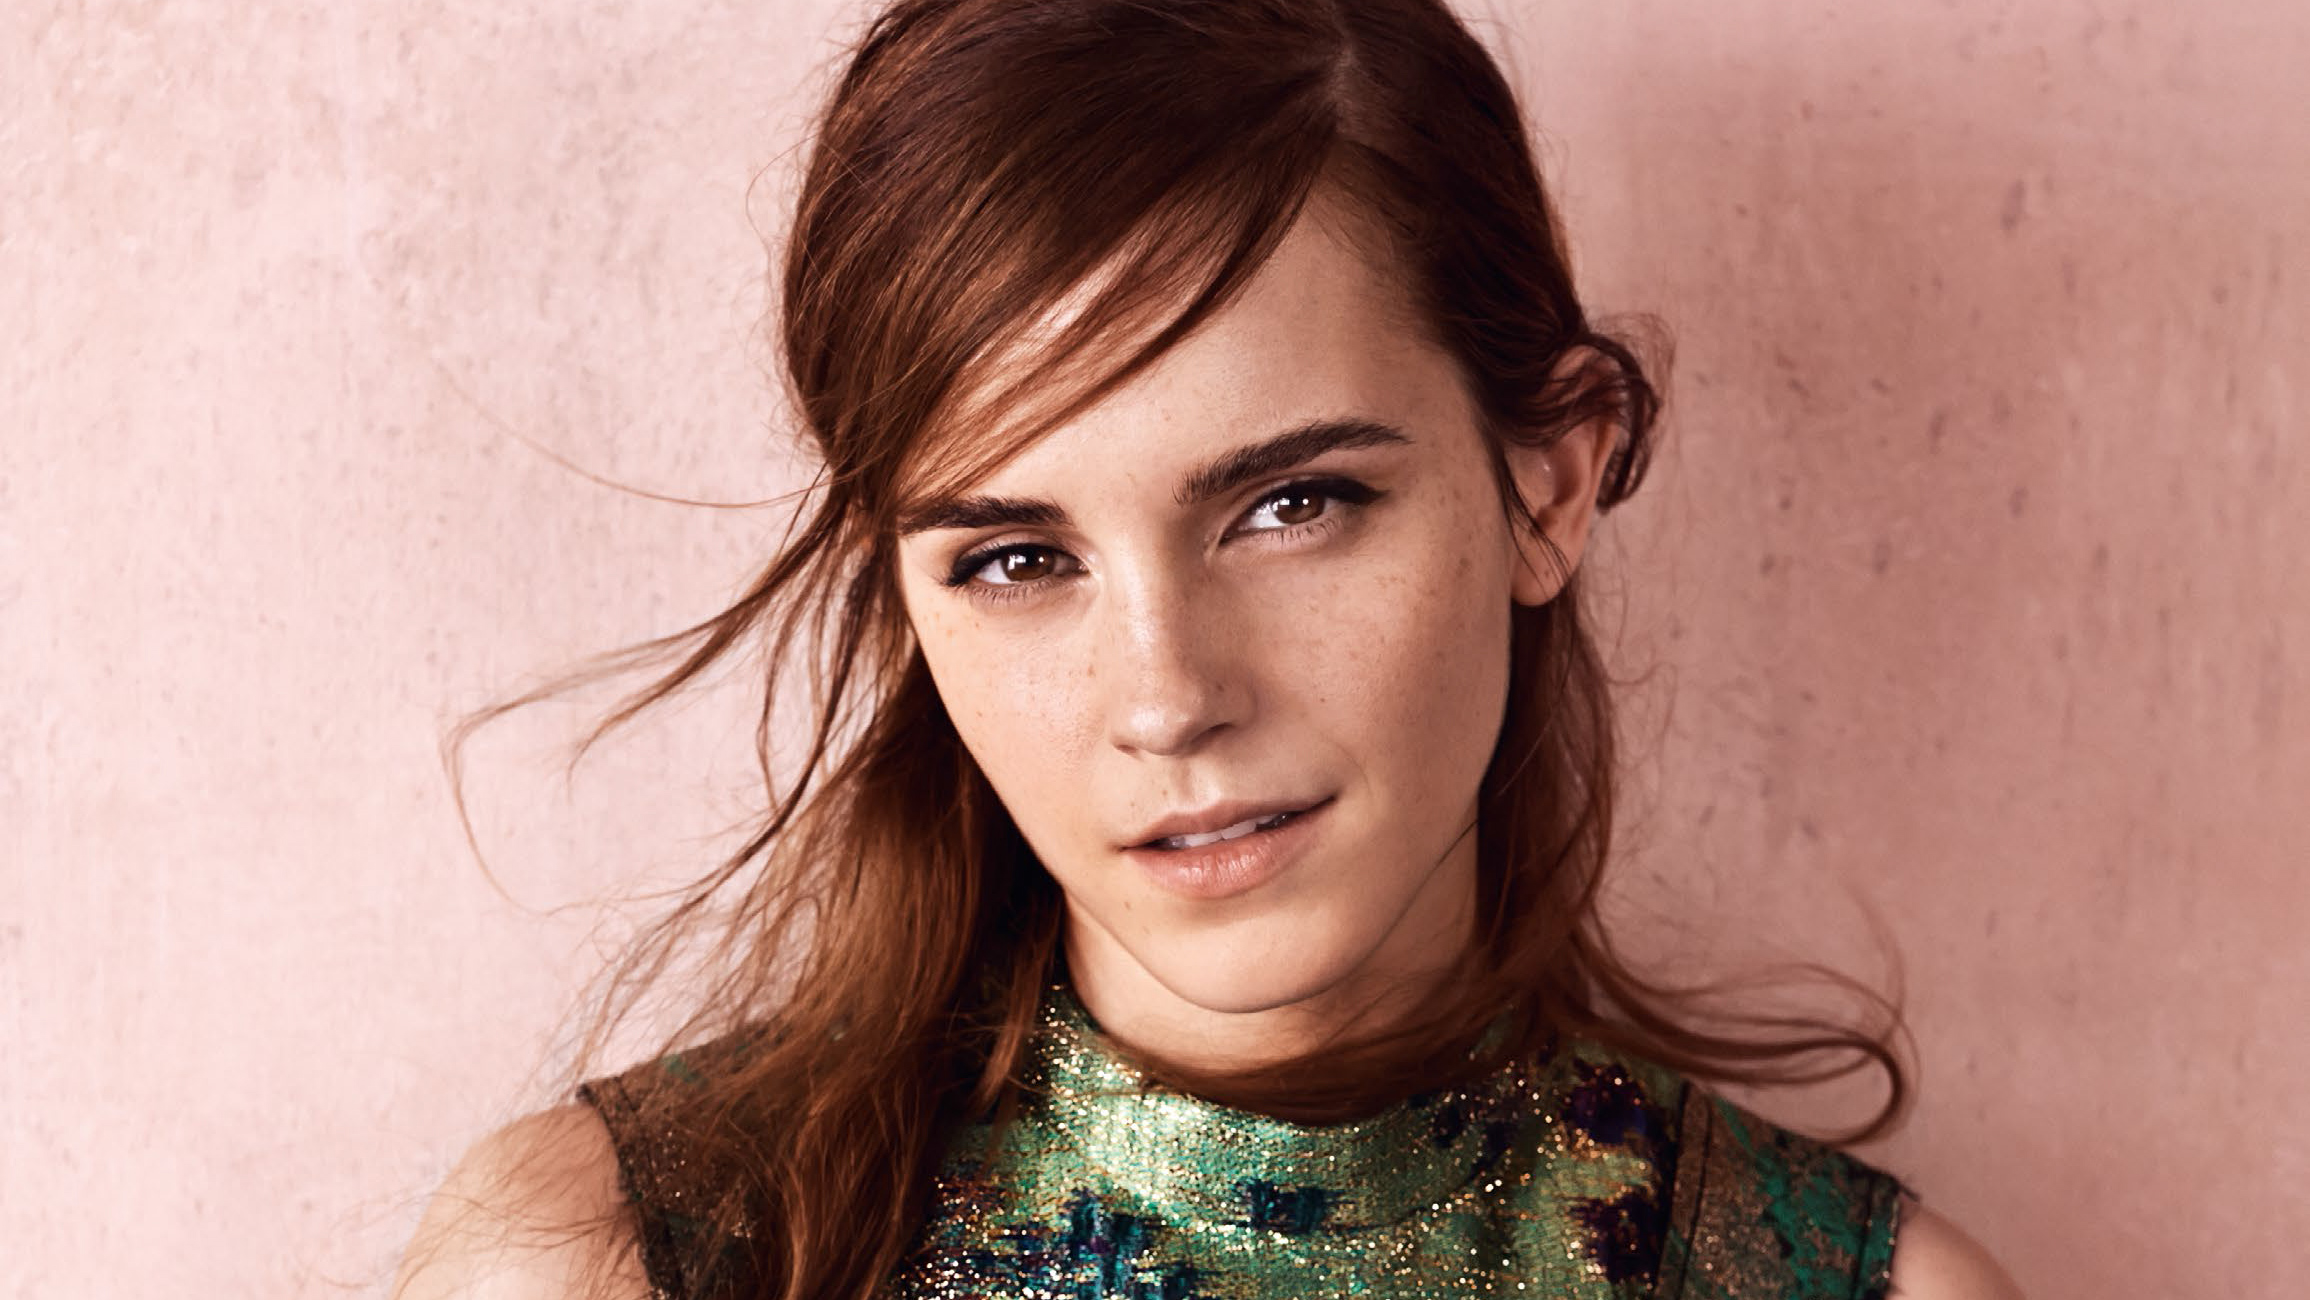 Emma watson 2019 hd celebrities 4k wallpapers images - Emma watson wallpaper free download ...